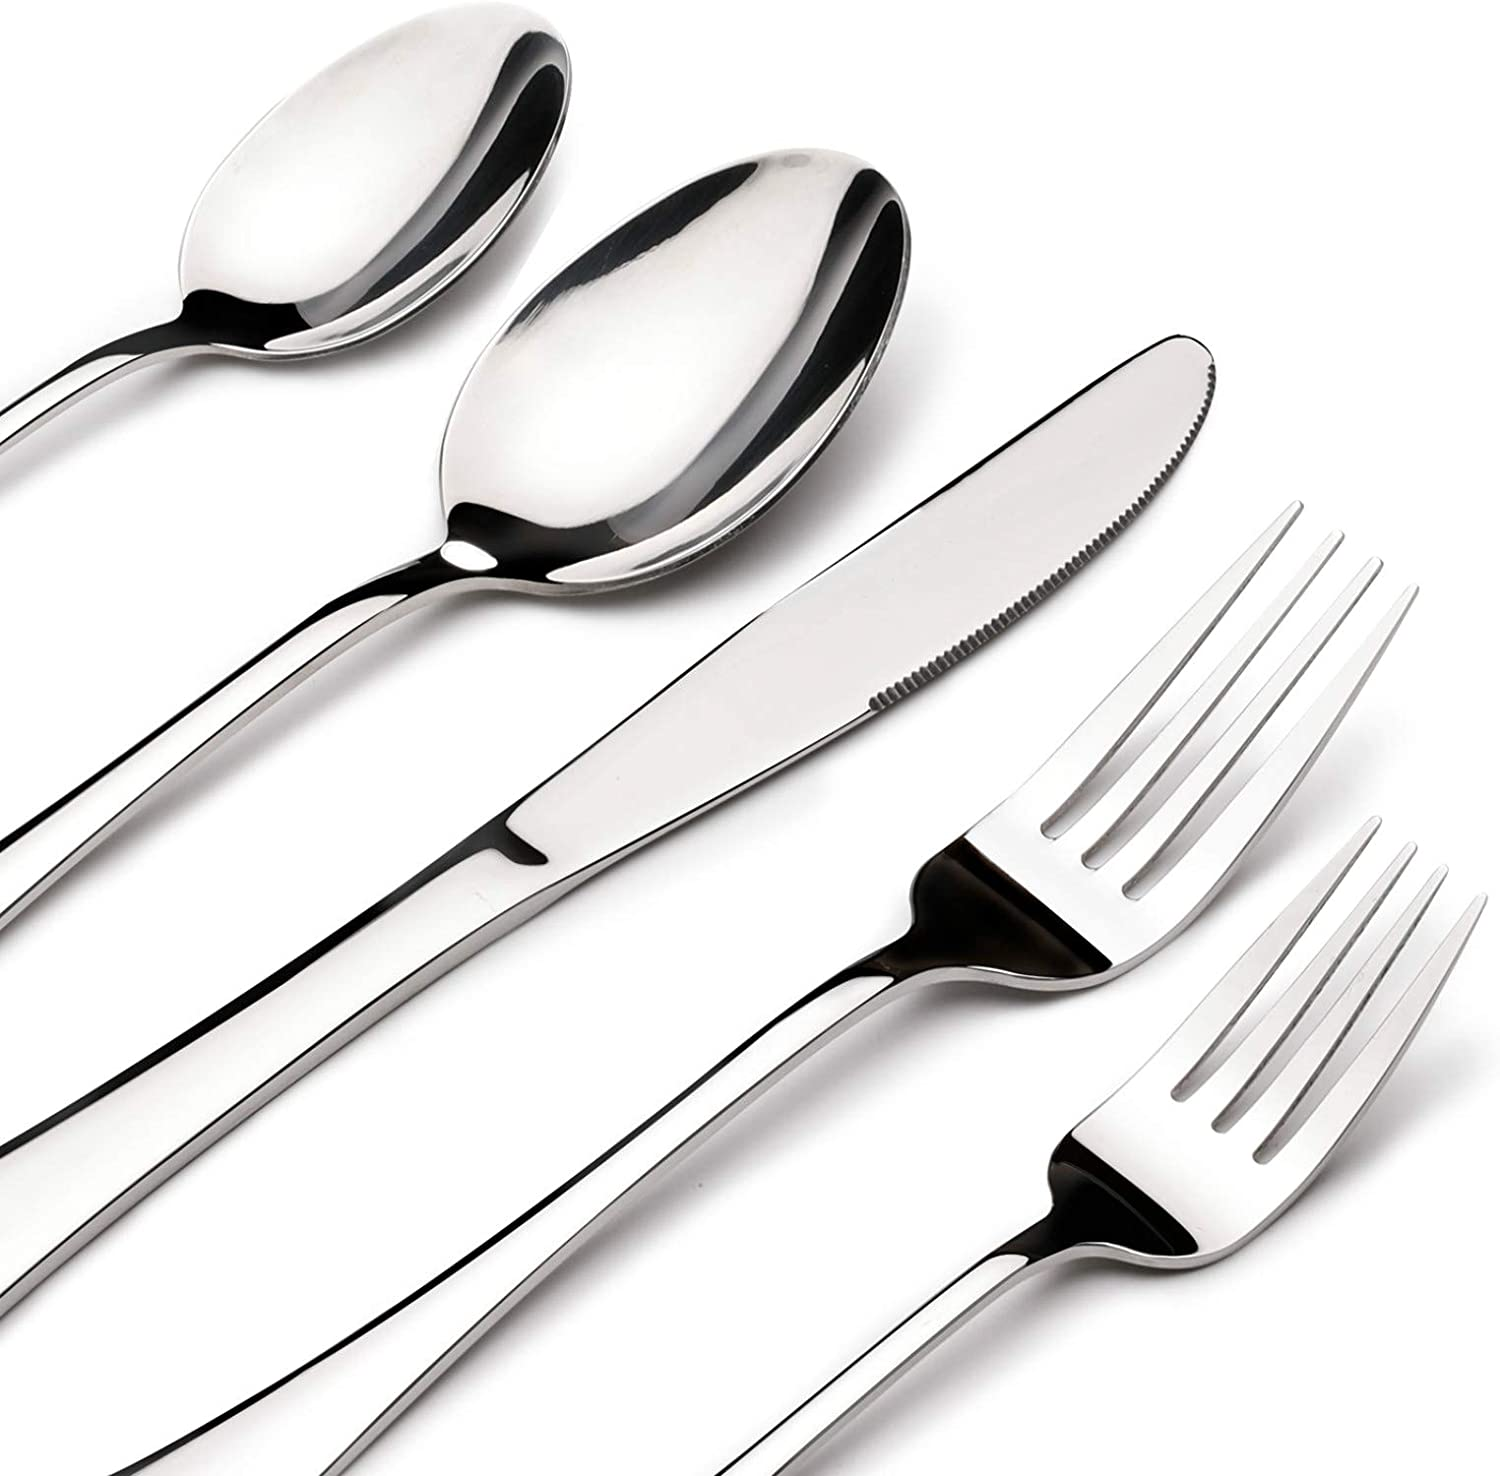 Acnusik Stainless Steel Flatware Service for 8, Utensils Cutlery Including Knife 40-Piece Silverware Set, Silver